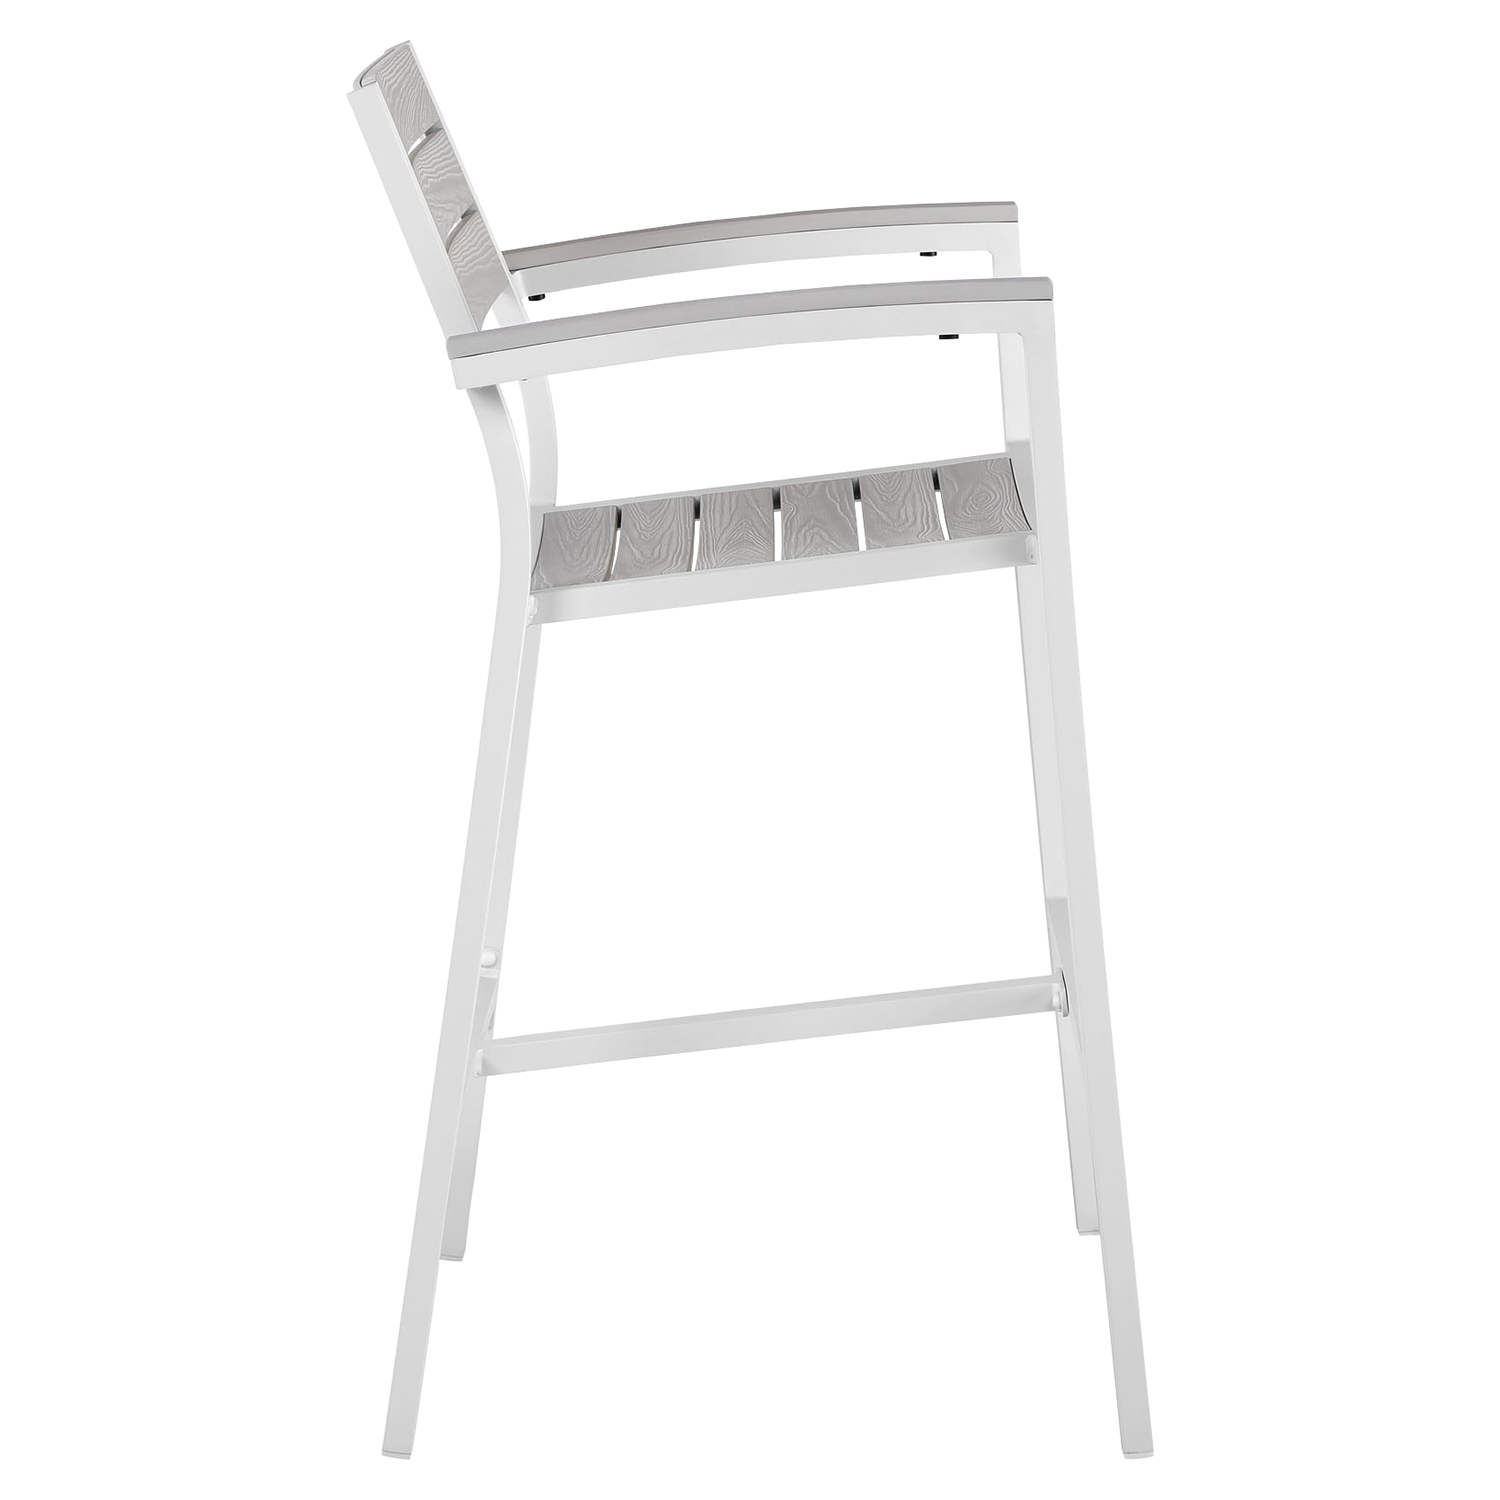 Maine 3 Pieces Patio Set - White, Light Gray - EEI-1754-WHI-LGR-SET